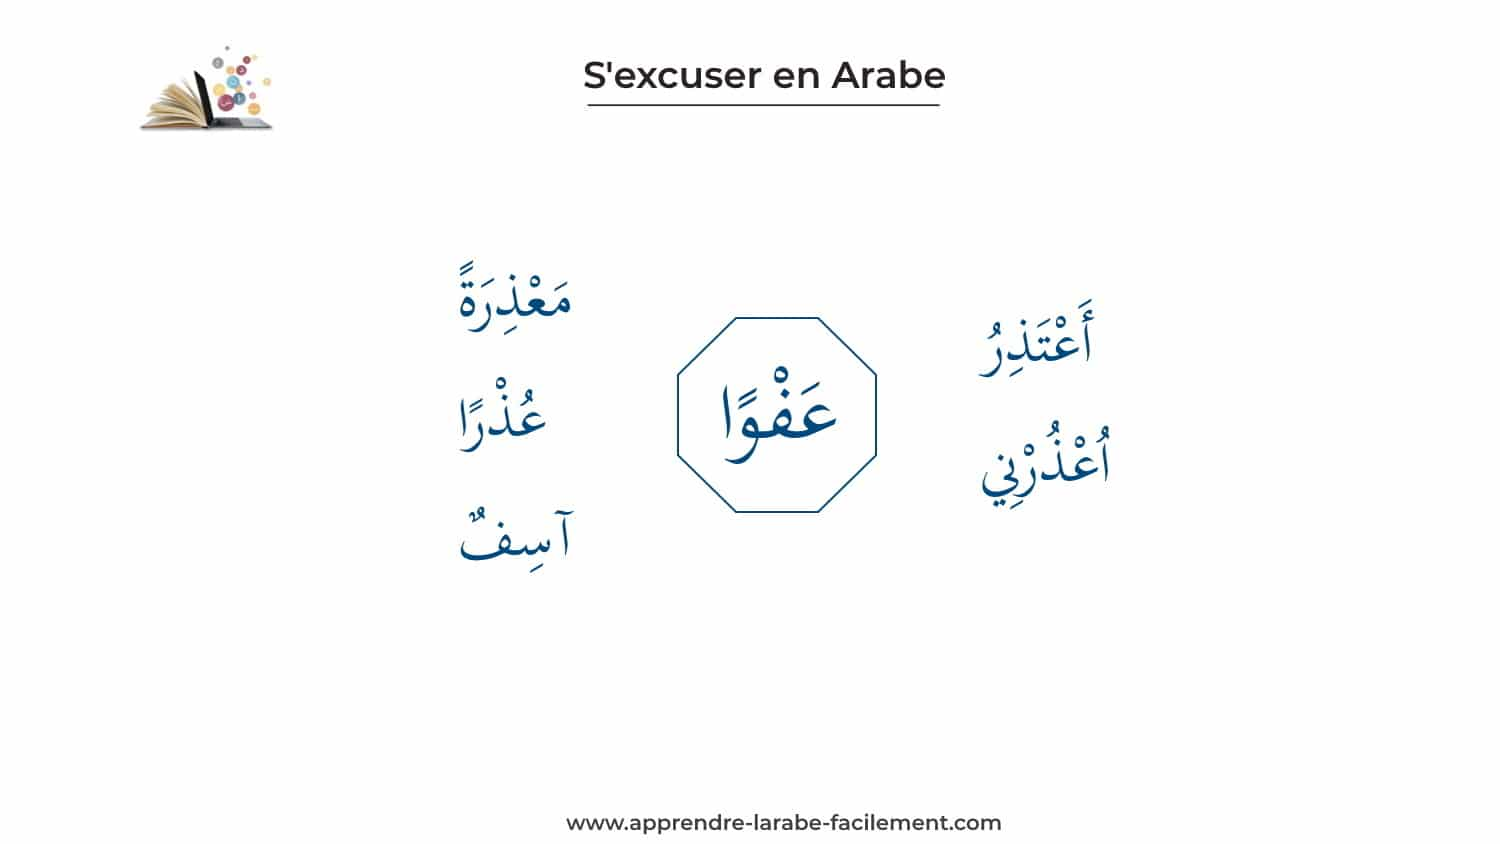 S'excuser en arabe